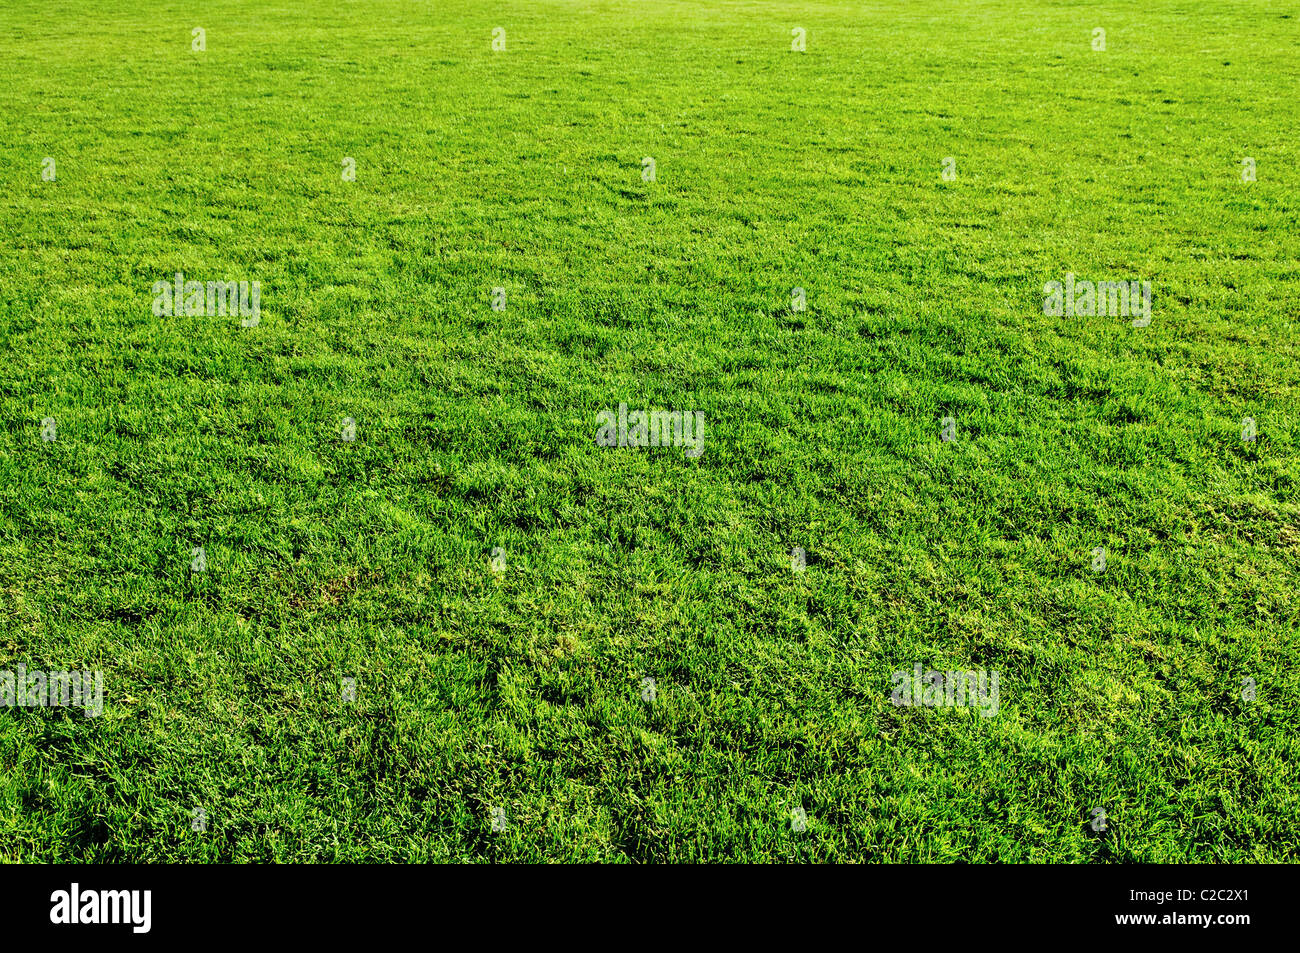 spring green grass meadow for design - Stock Image